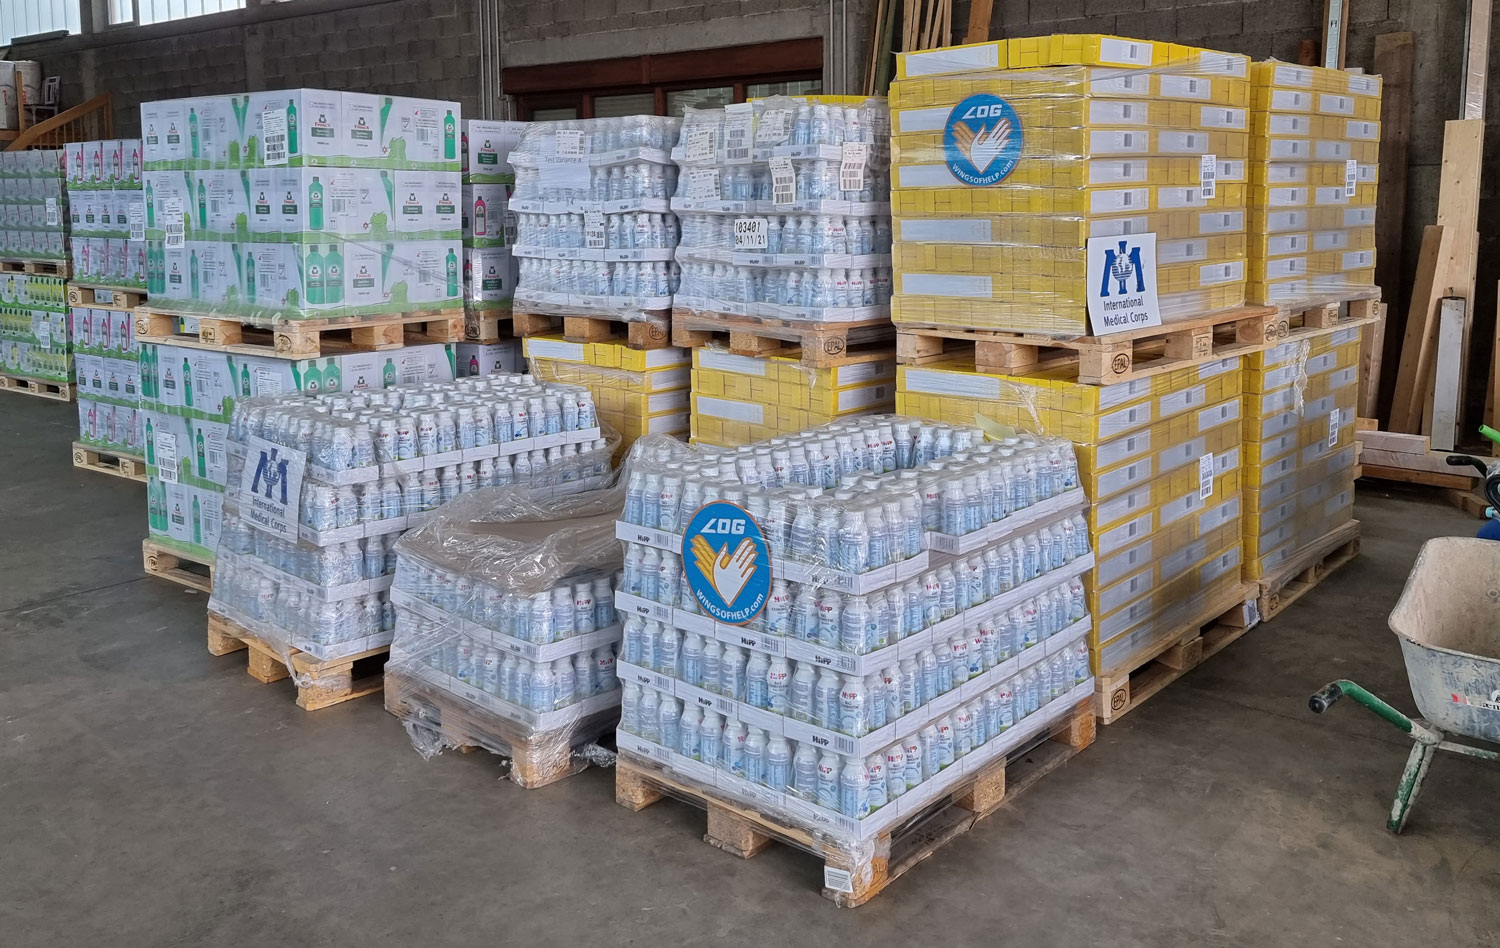 International Medical Corps and Luftfahrt ohne Grenzen have so far delivered close to 250 tons of relief supplies